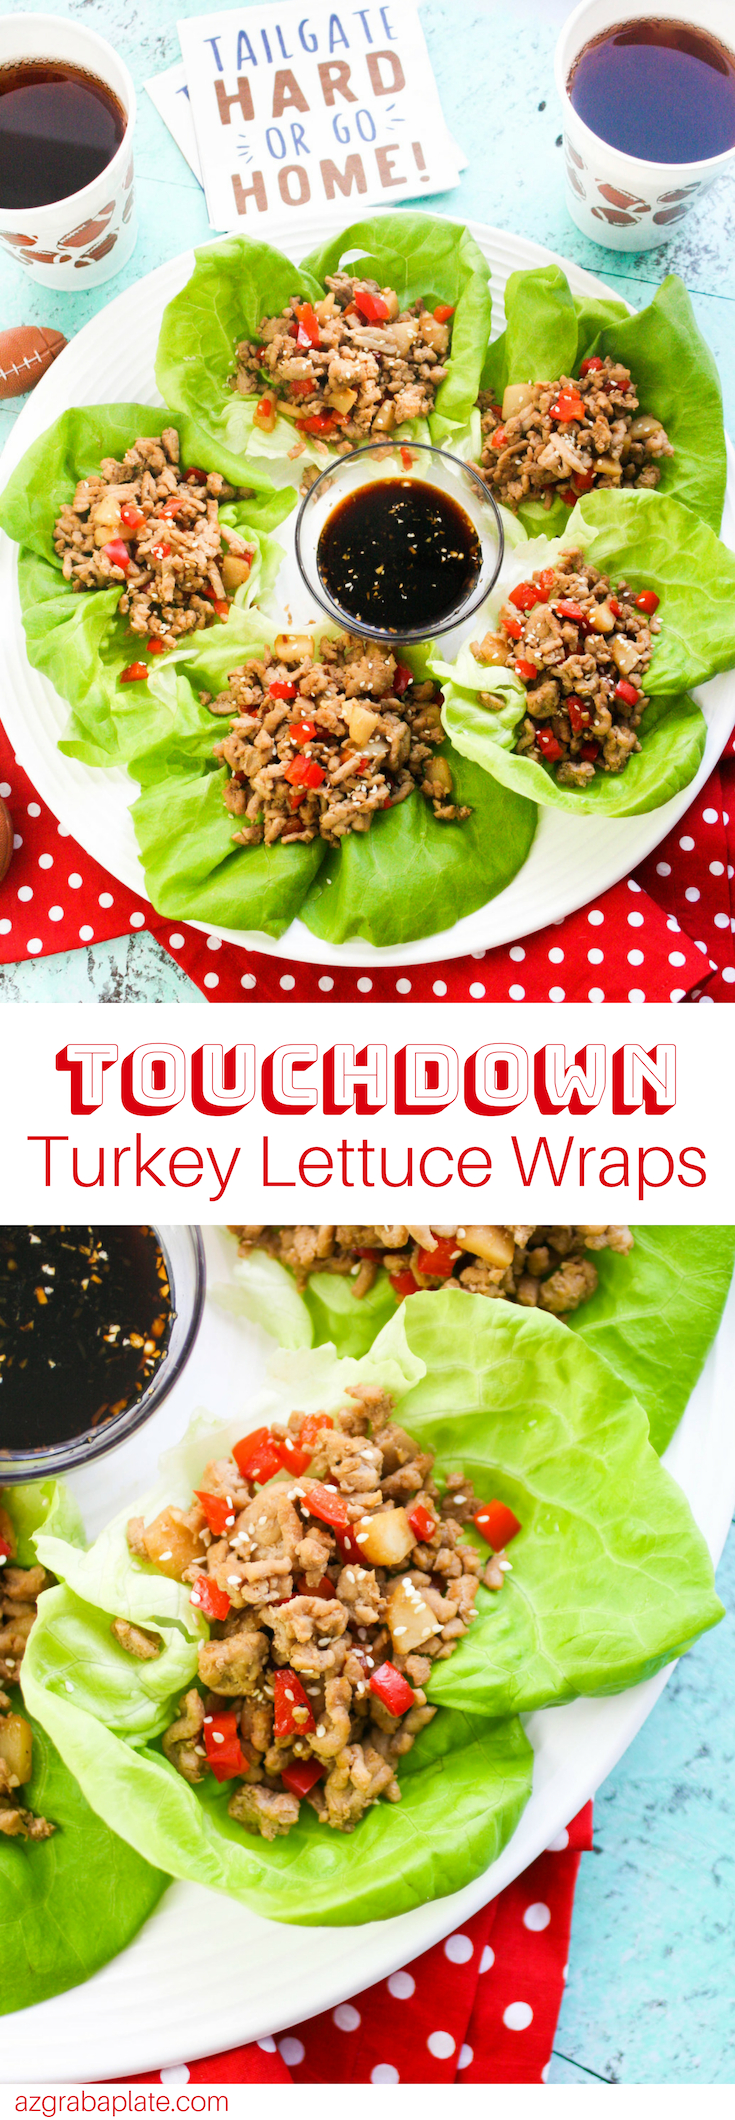 Touchdown Turkey Lettuce Wraps are so fun and tasty to serve for a game-day gathering! Touchdown Turkey Lettuce Wraps make a healthy and delicious game-day menu option!